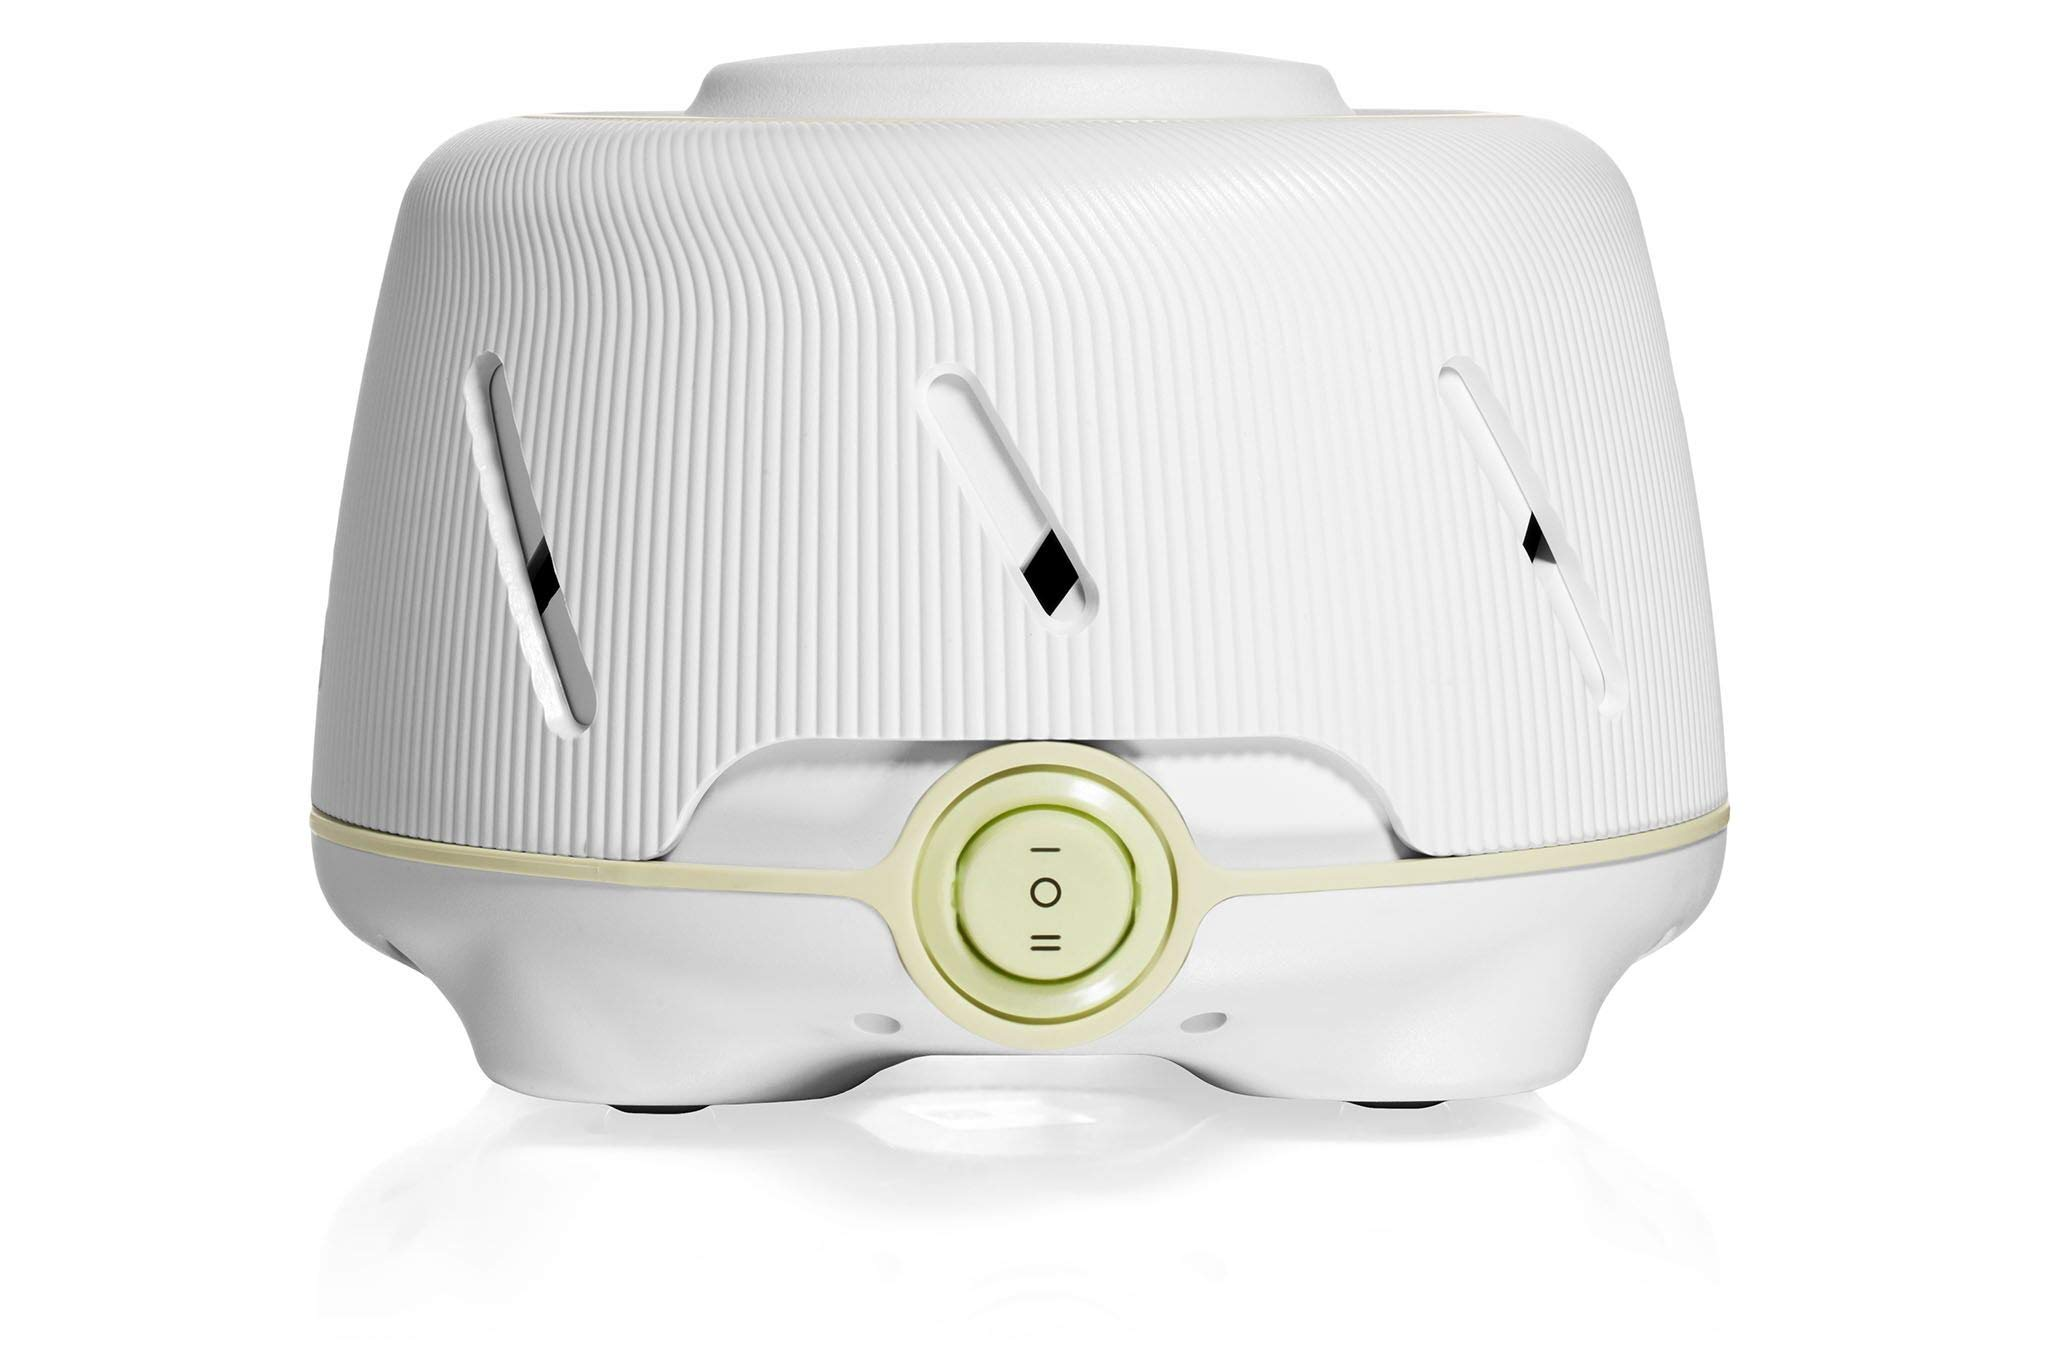 Marpac Dohm (White/Green) | The Original White Noise Machine | Soothing Natural Sound from a Real Fan | Noise Cancelling | Sleep Therapy, Office Privacy, Travel | For Adults & Baby | 101 Night Trial by Marpac